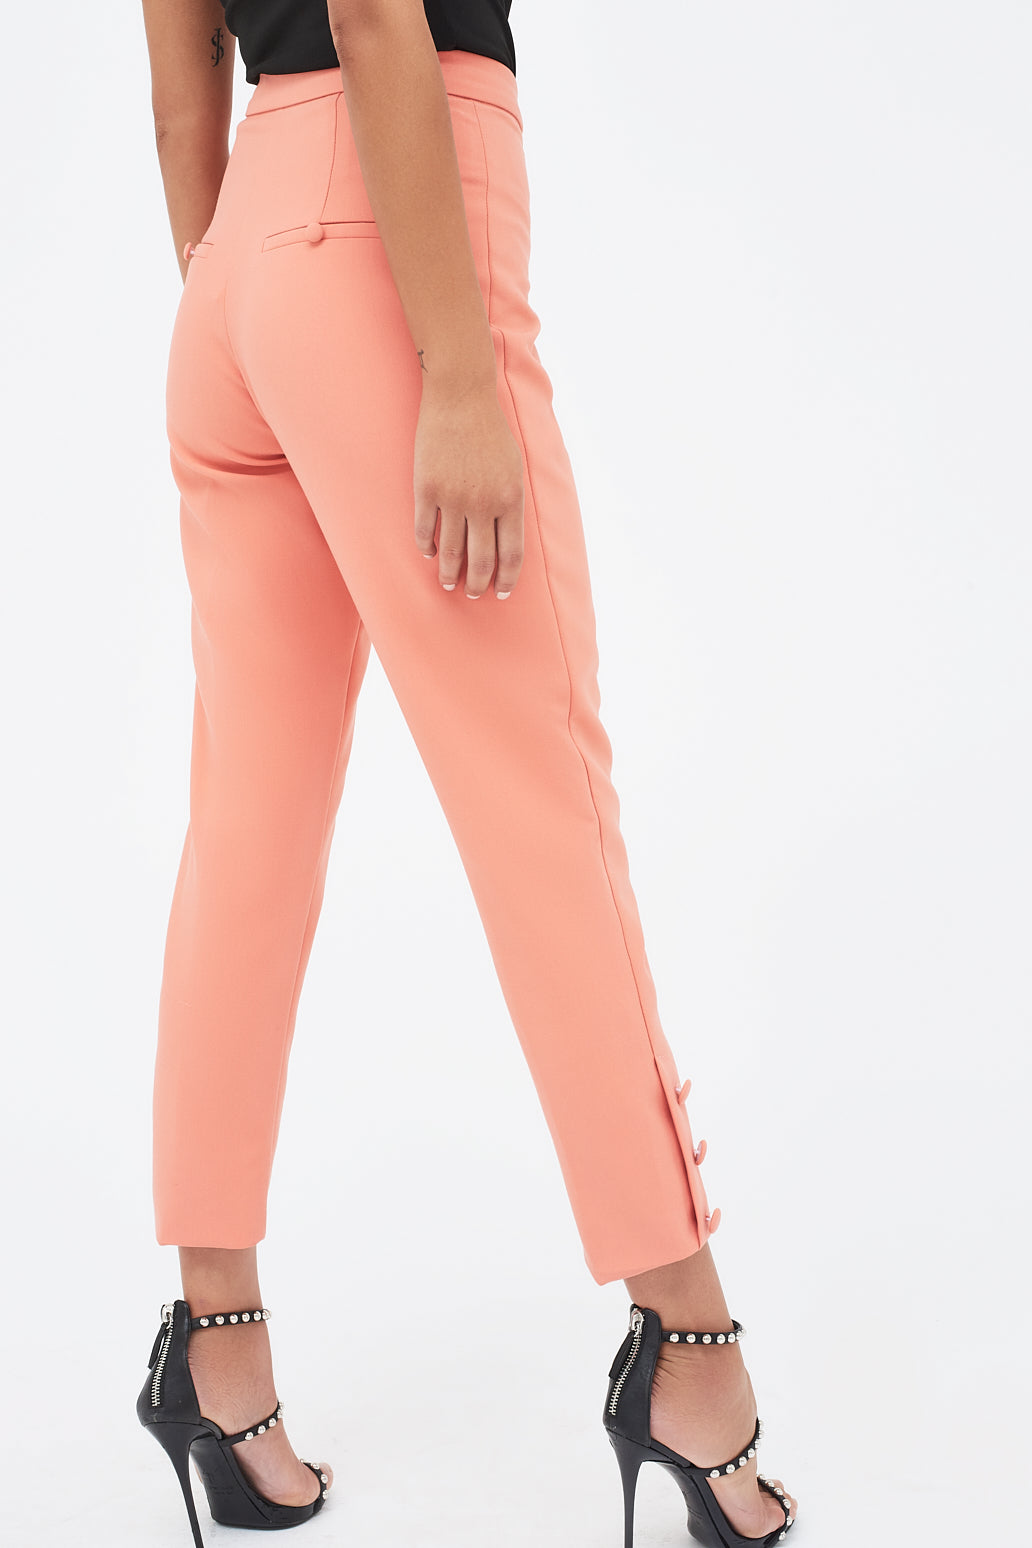 Lavish Alice tapered suit trousers with button detail in papaya